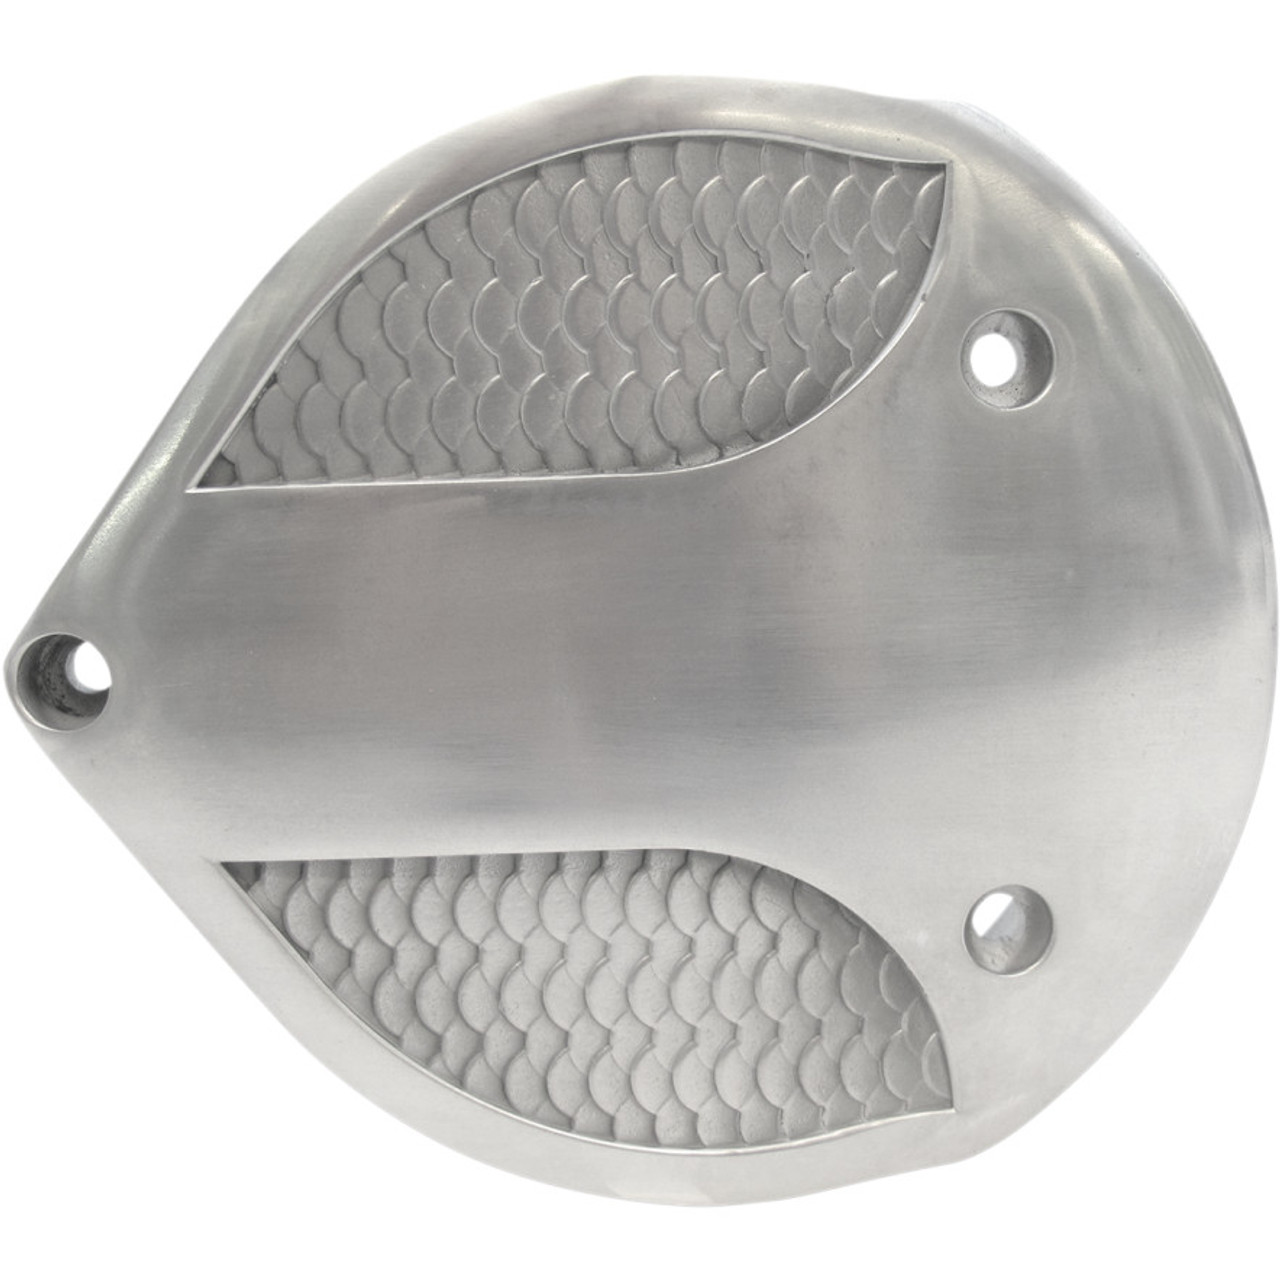 Air Cleaner Cap : Lowbrow customs fish scale air cleaner cover for s carbs